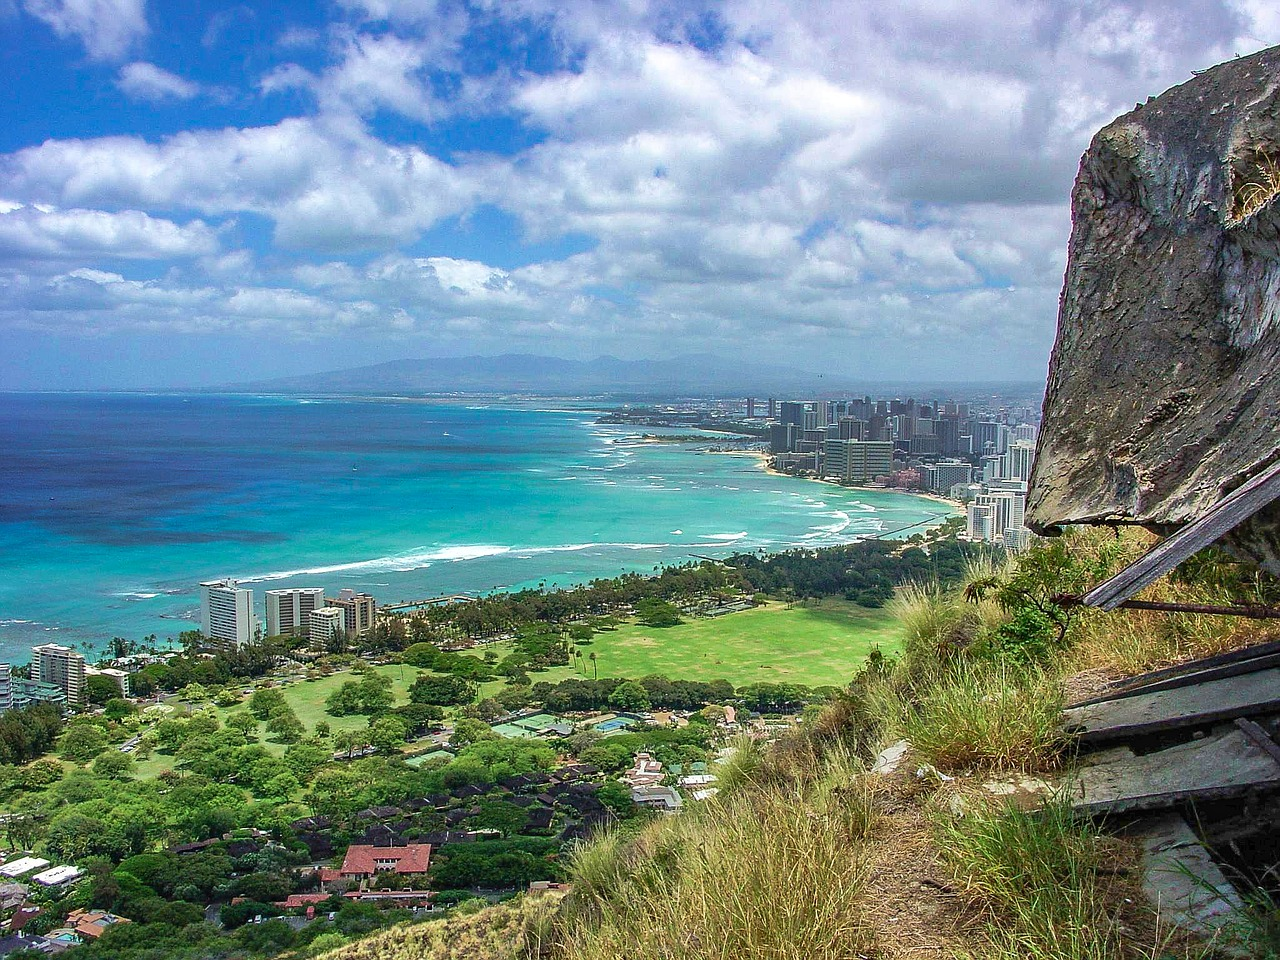 Diamond Head | Public Domain/Pixabay